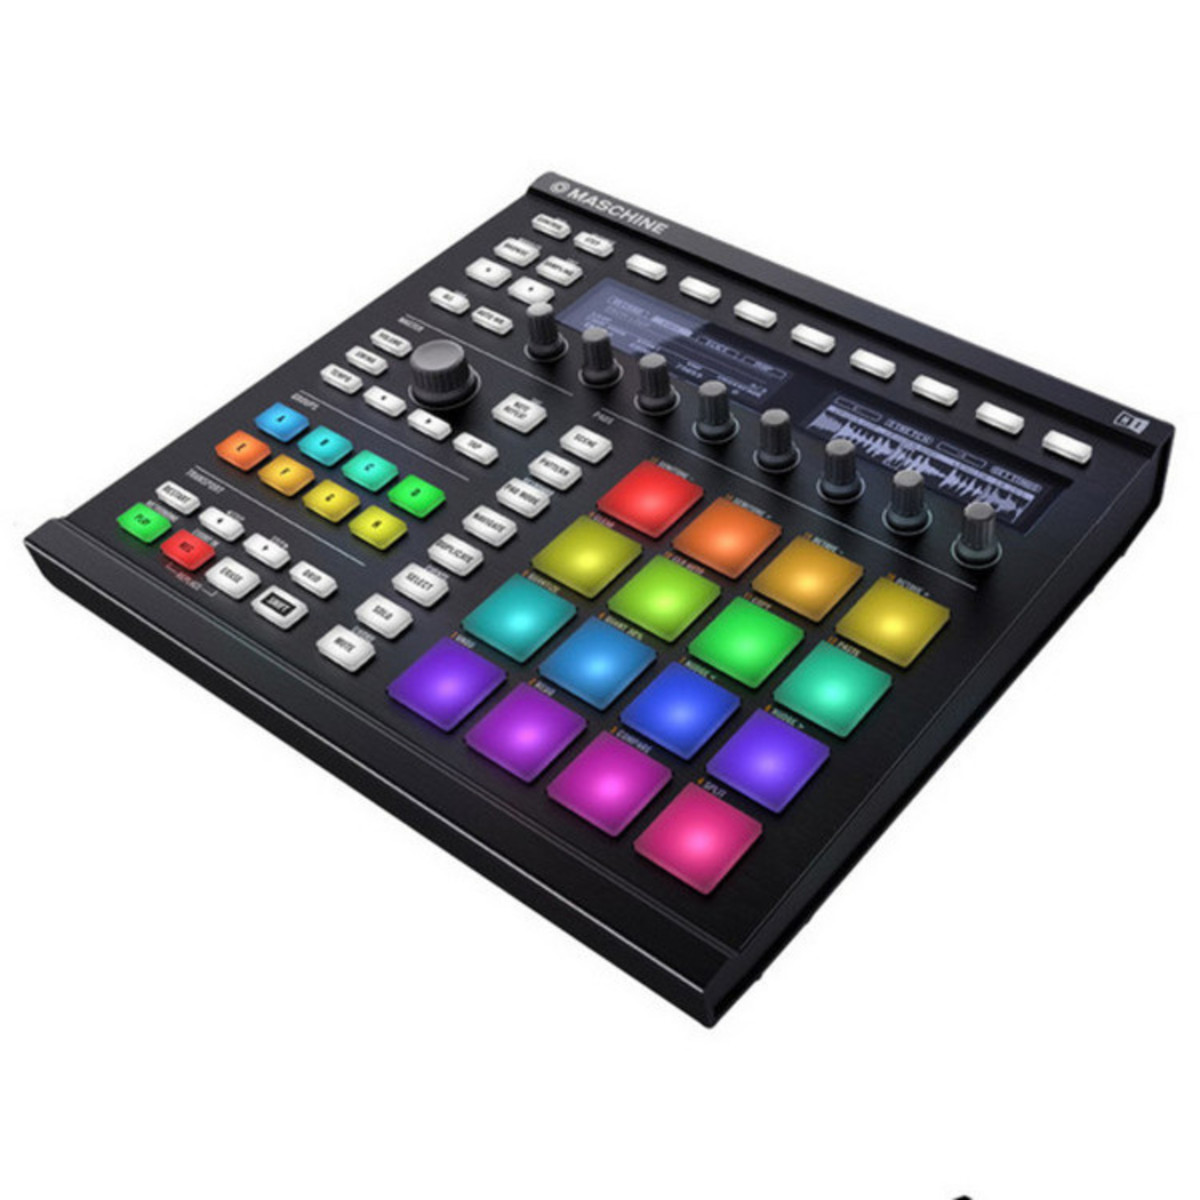 DISC Native Instruments Maschine MK2 (Black) and Komplete 9 Bundle ...